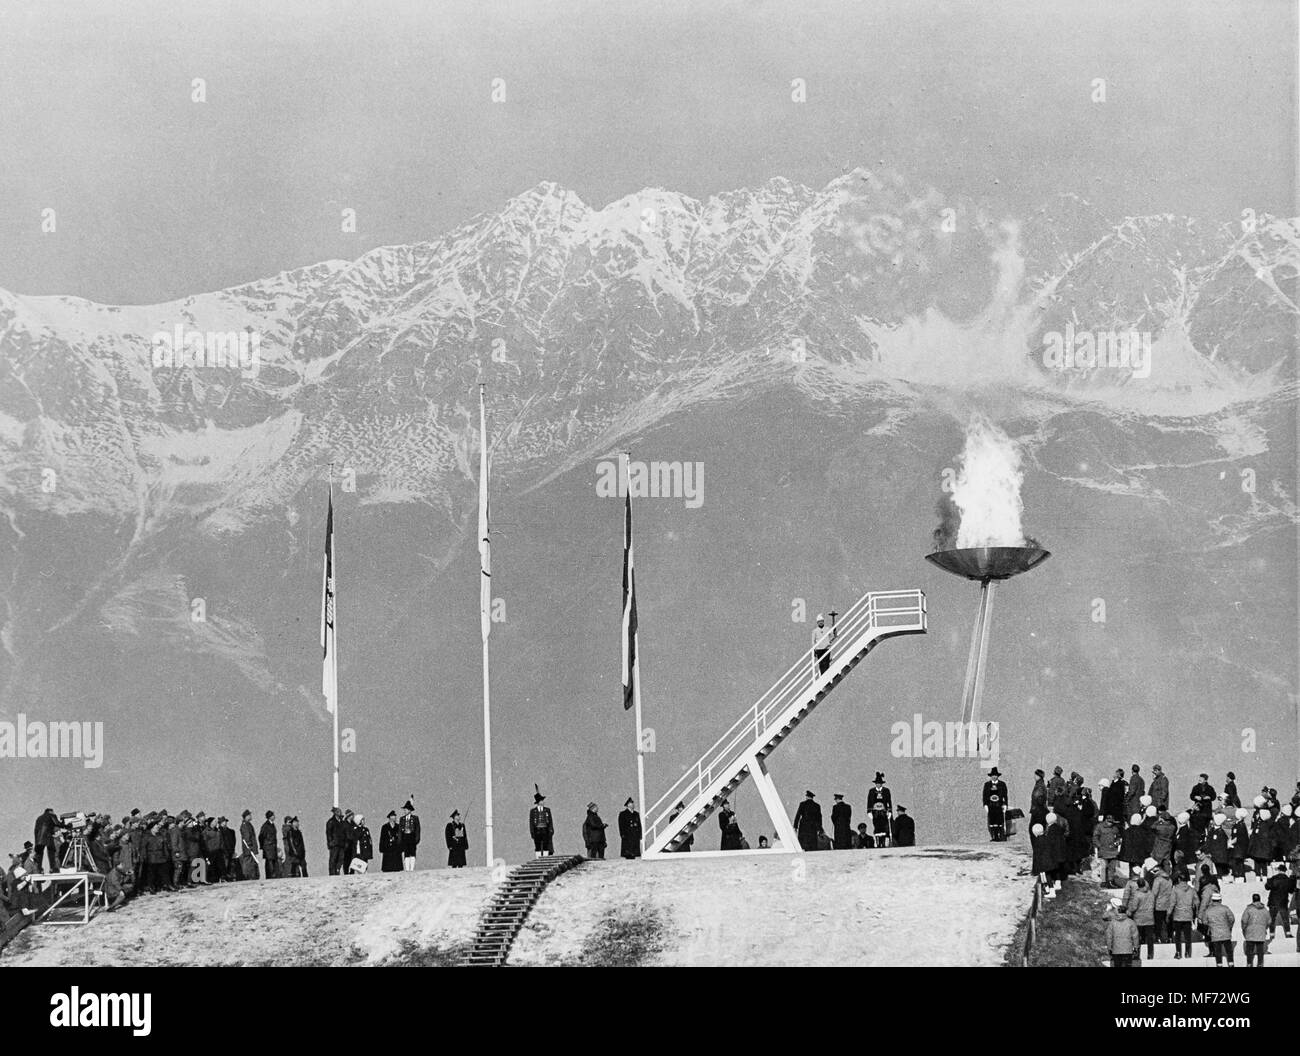 josl rieder lit the Olympic Flame at the 1964 Winter Olympics in Innsbruck - Stock Image